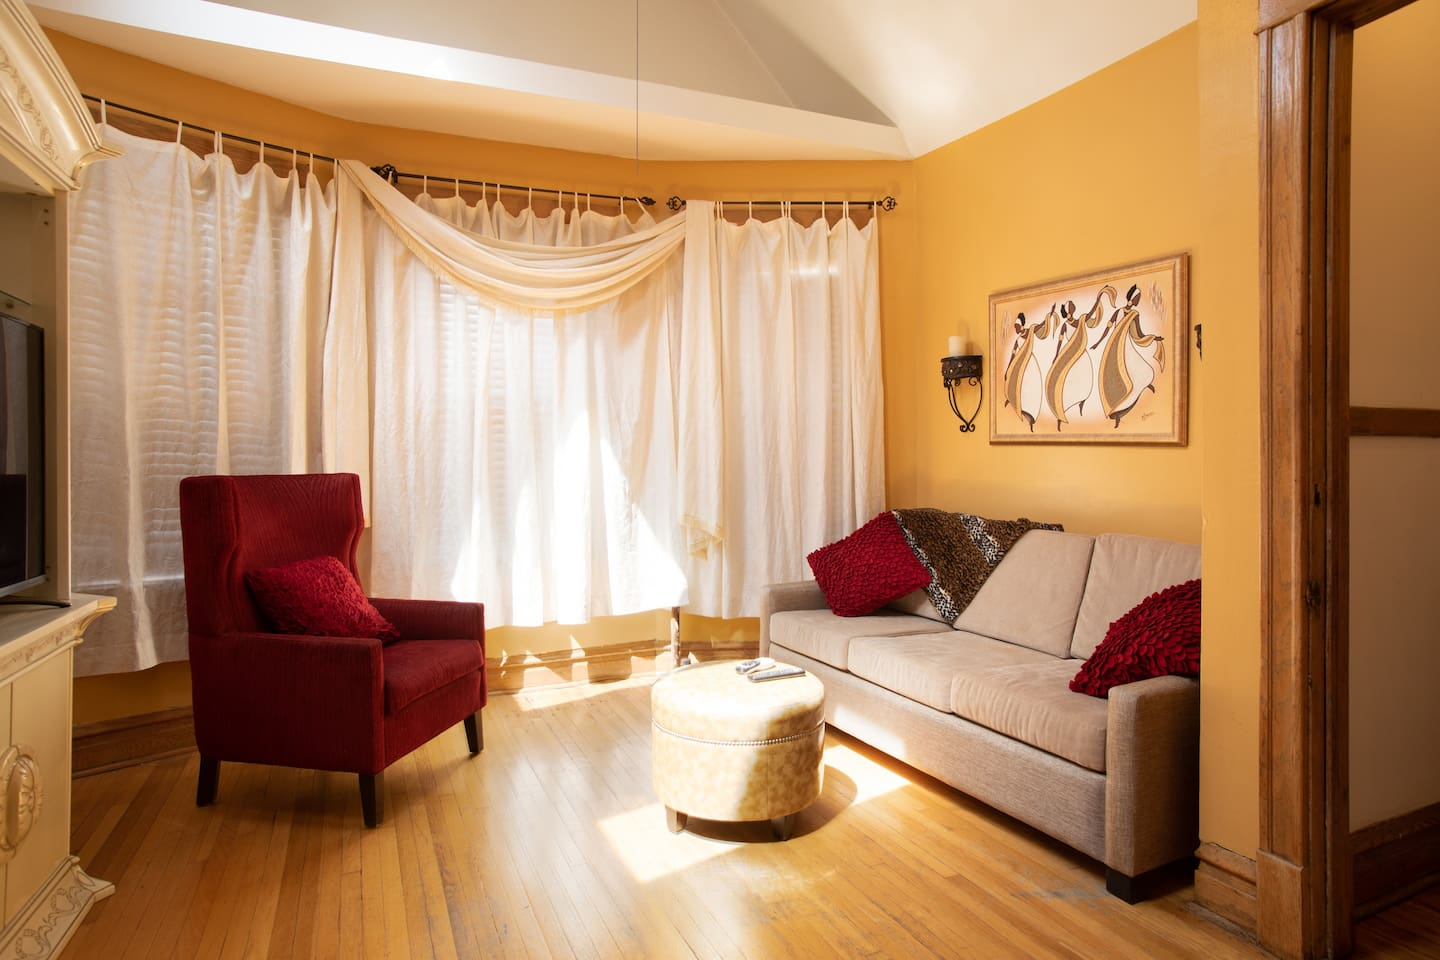 Comfortable and cozy living room for friends and family to gather. Natural light from the sun.